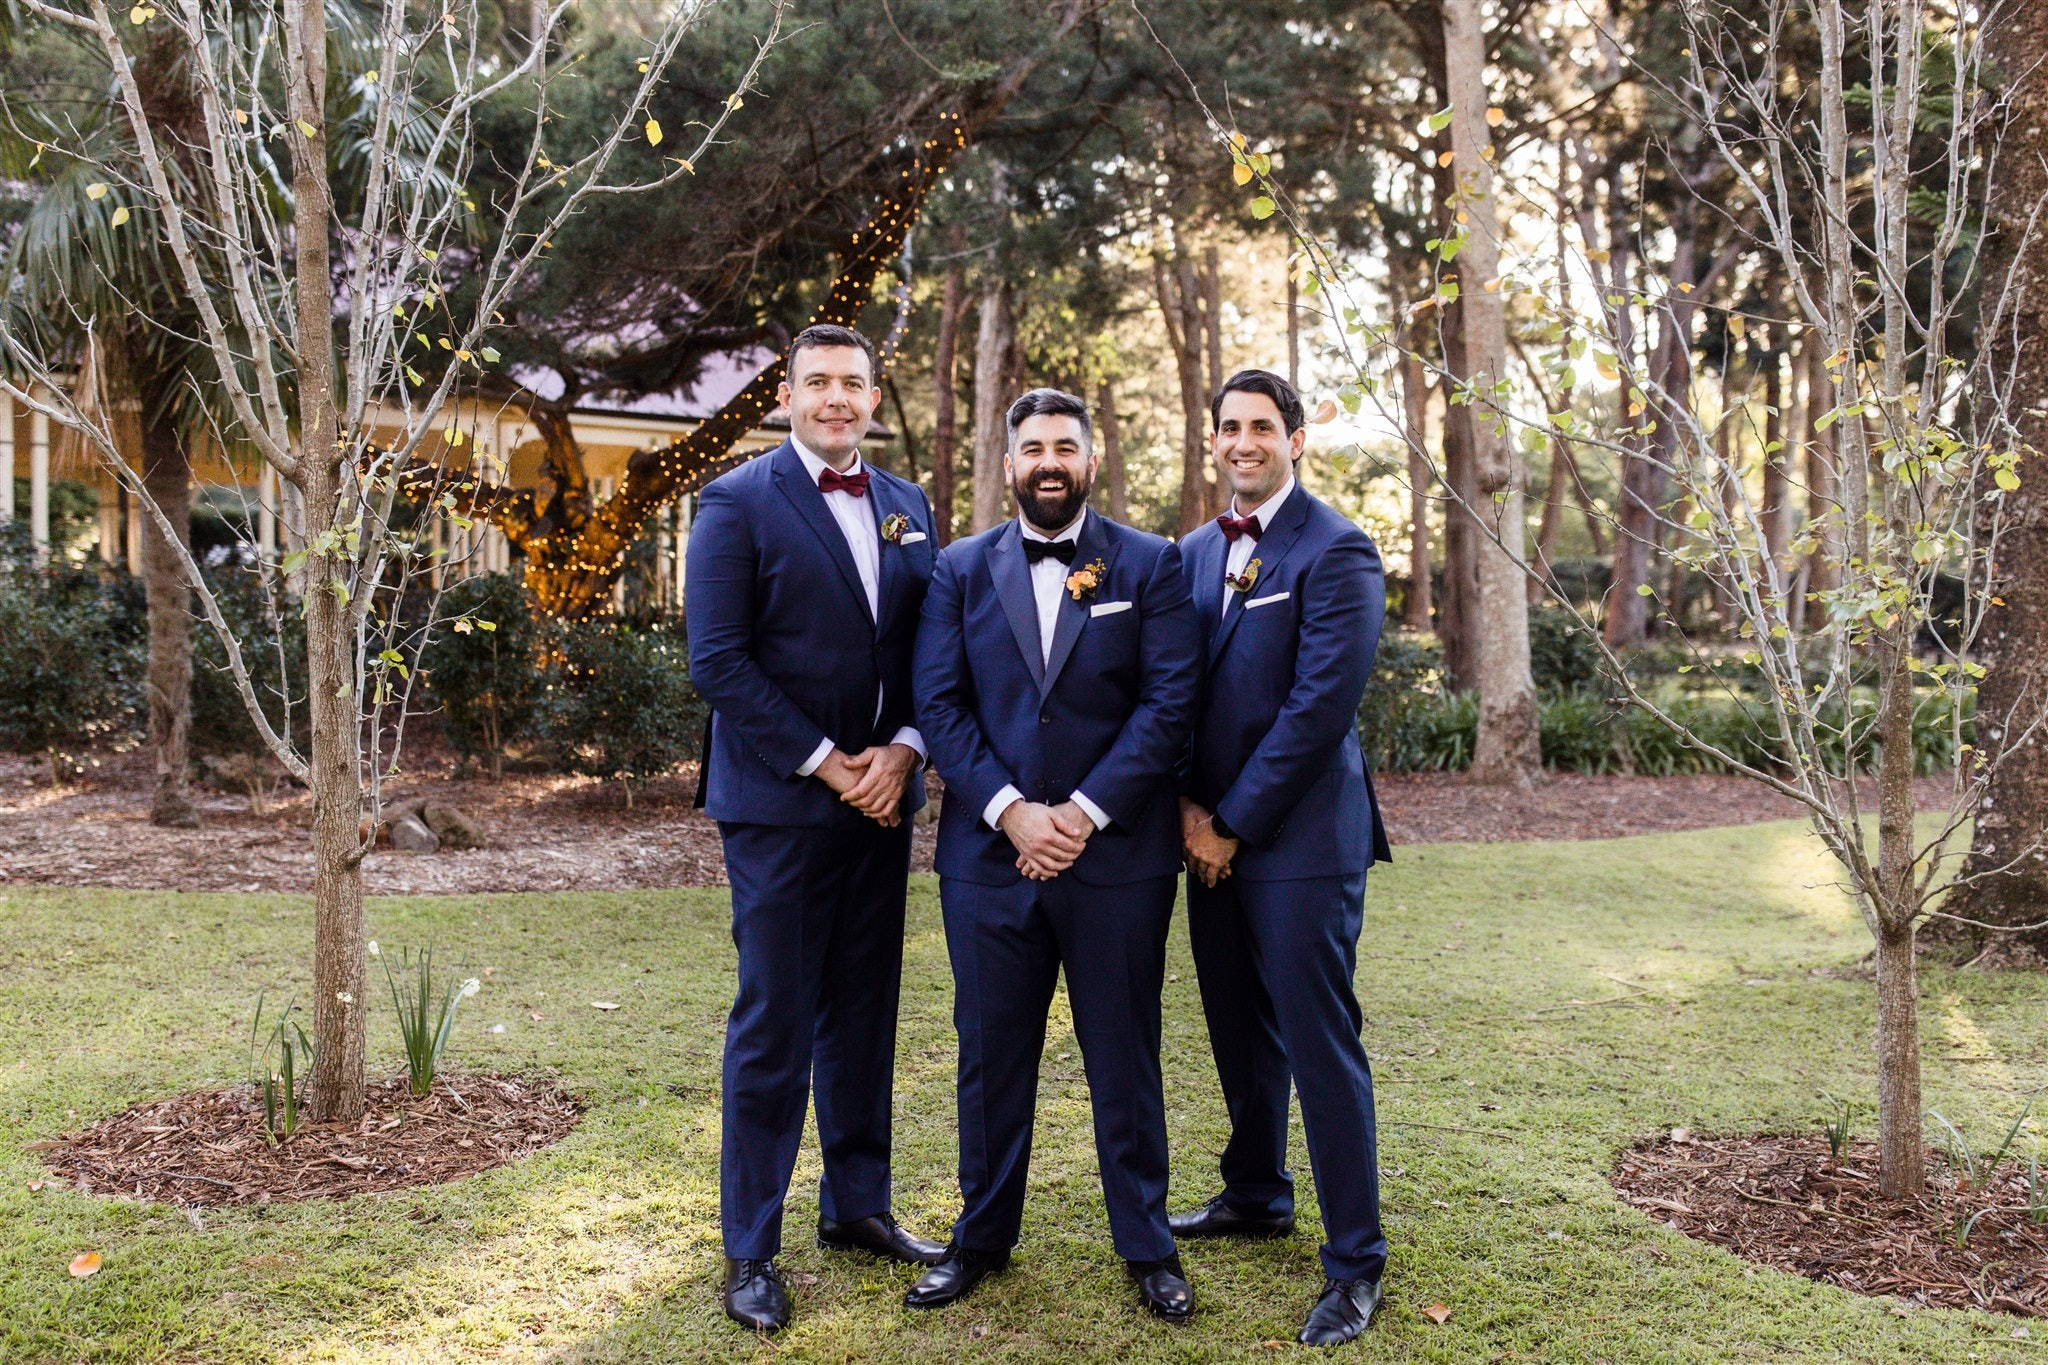 Groom and two groomsmen standing in gardens together